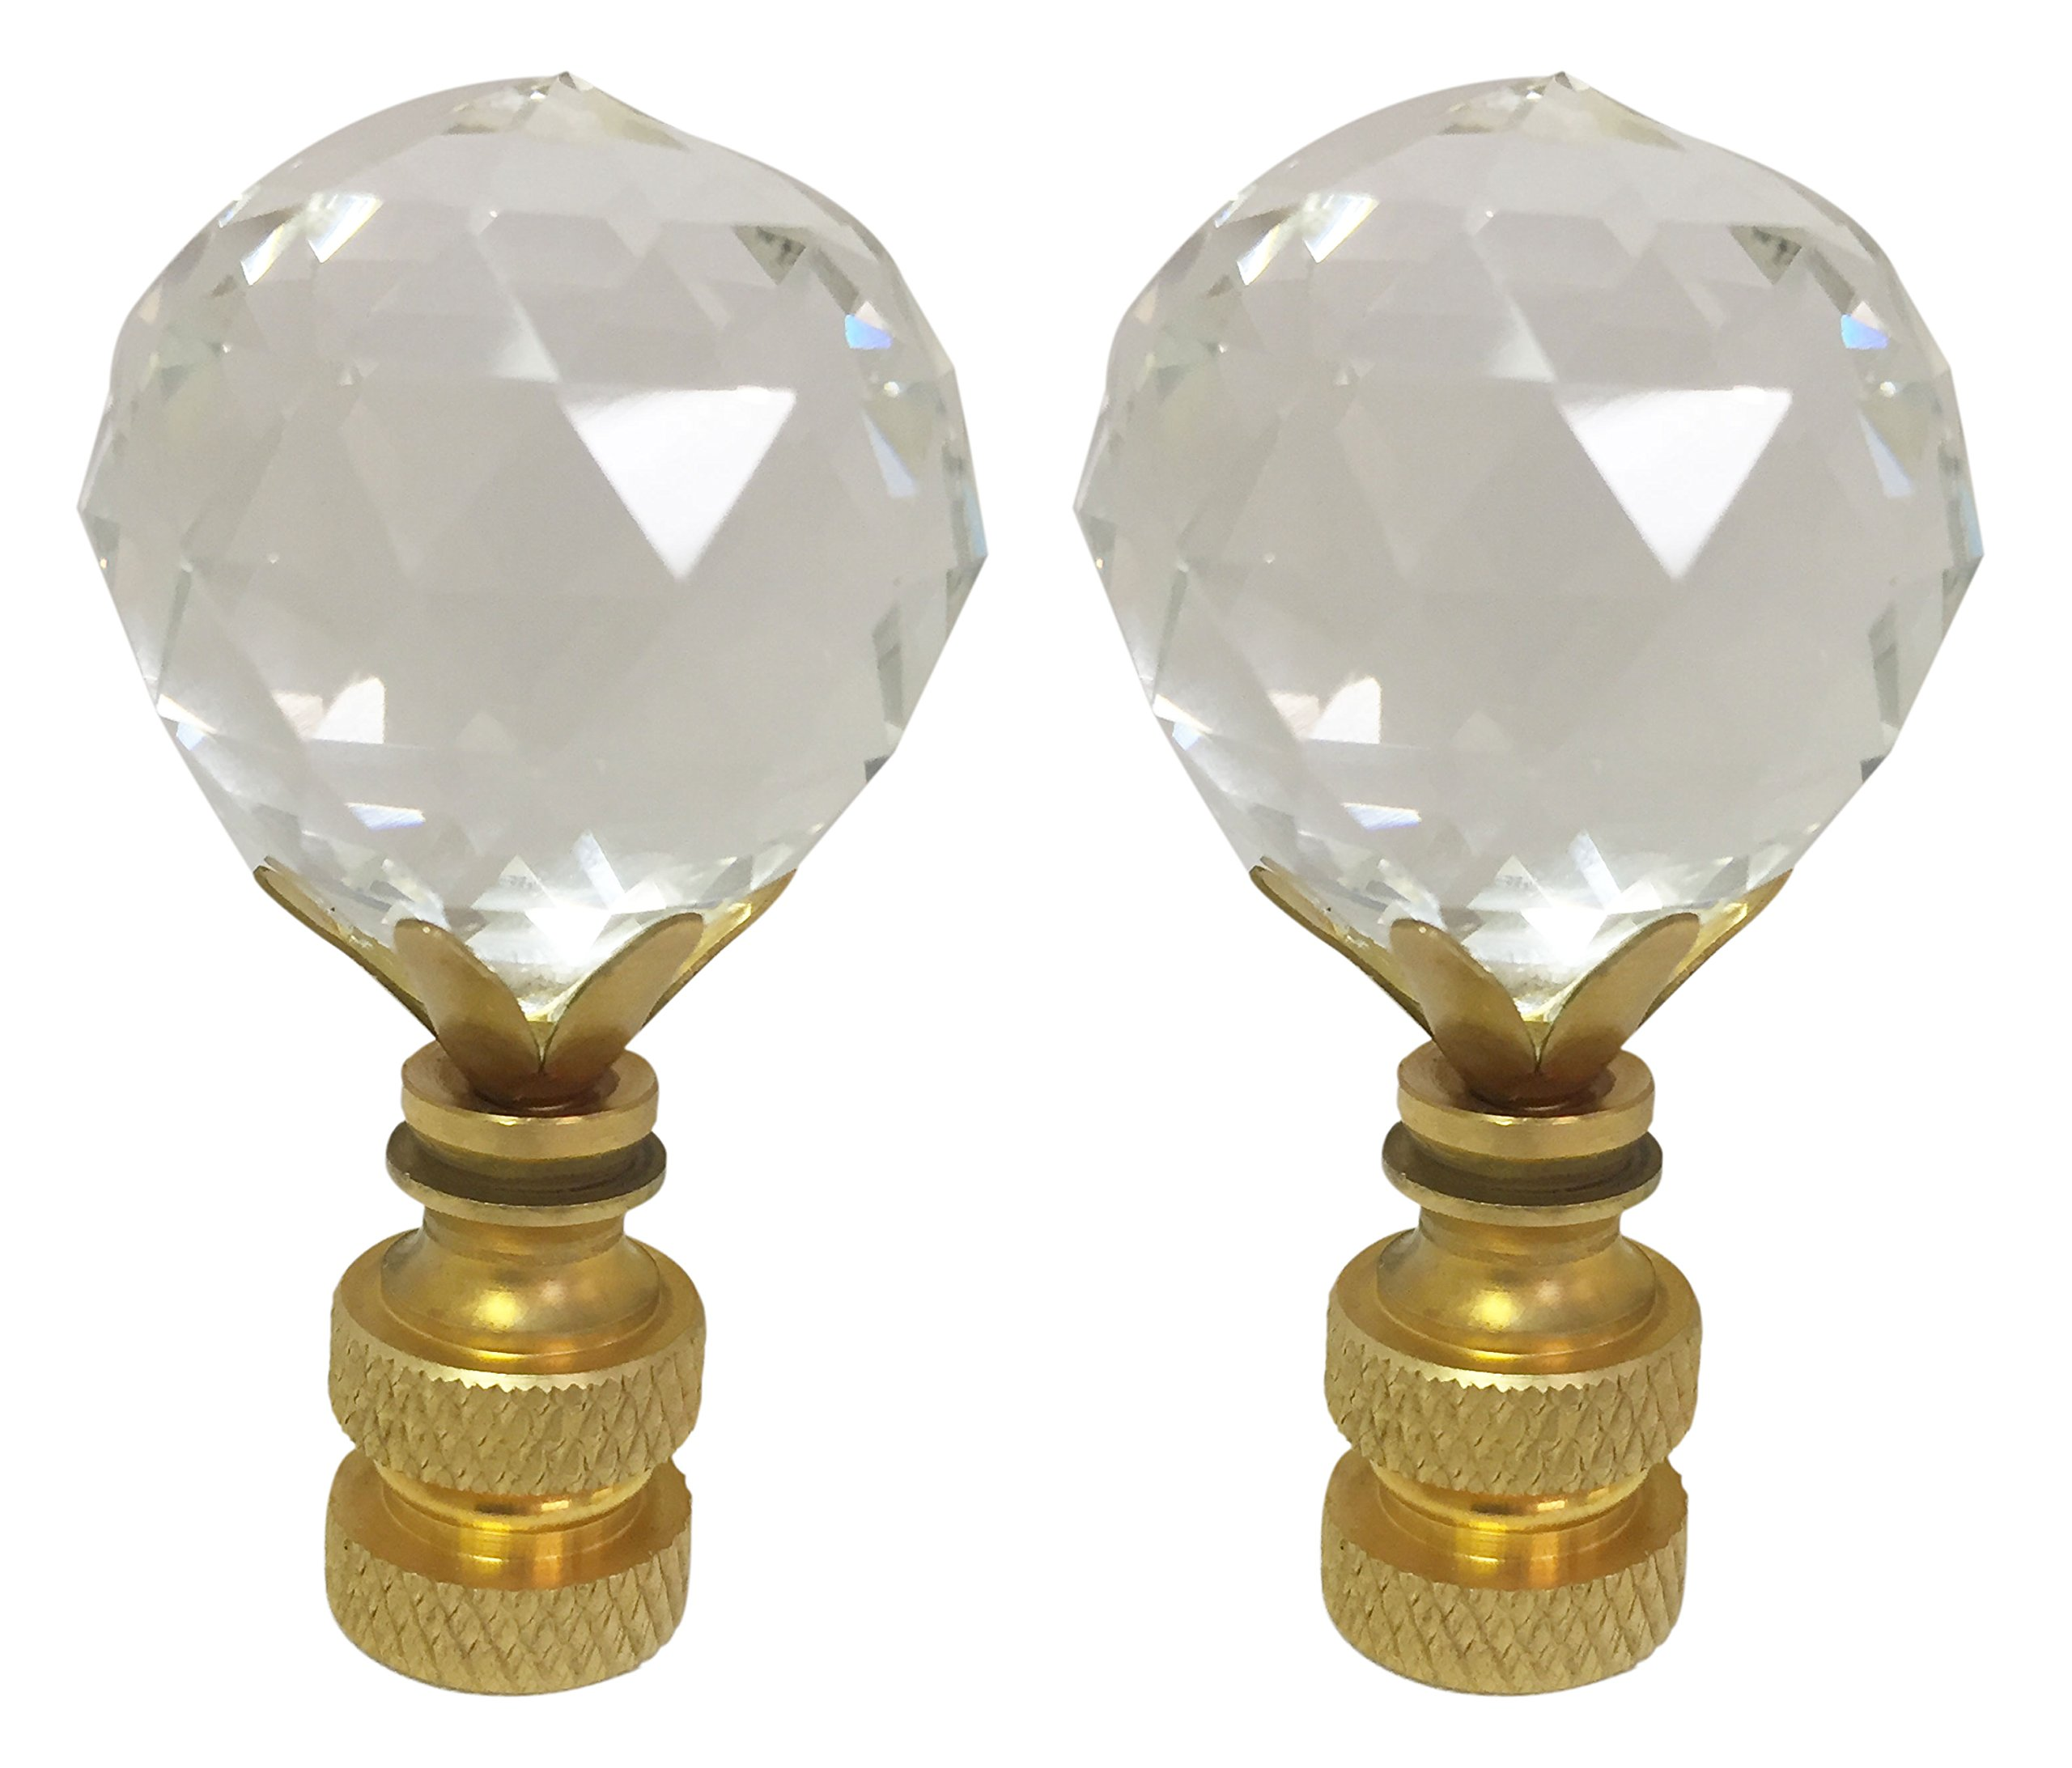 Royal Designs CCF2005M-PB-2 Medium Faceted Diamond Cut Clear K9 Crystal Finial for Lamp Shade with Polished Brass Base, Set of 2, 2 Piece